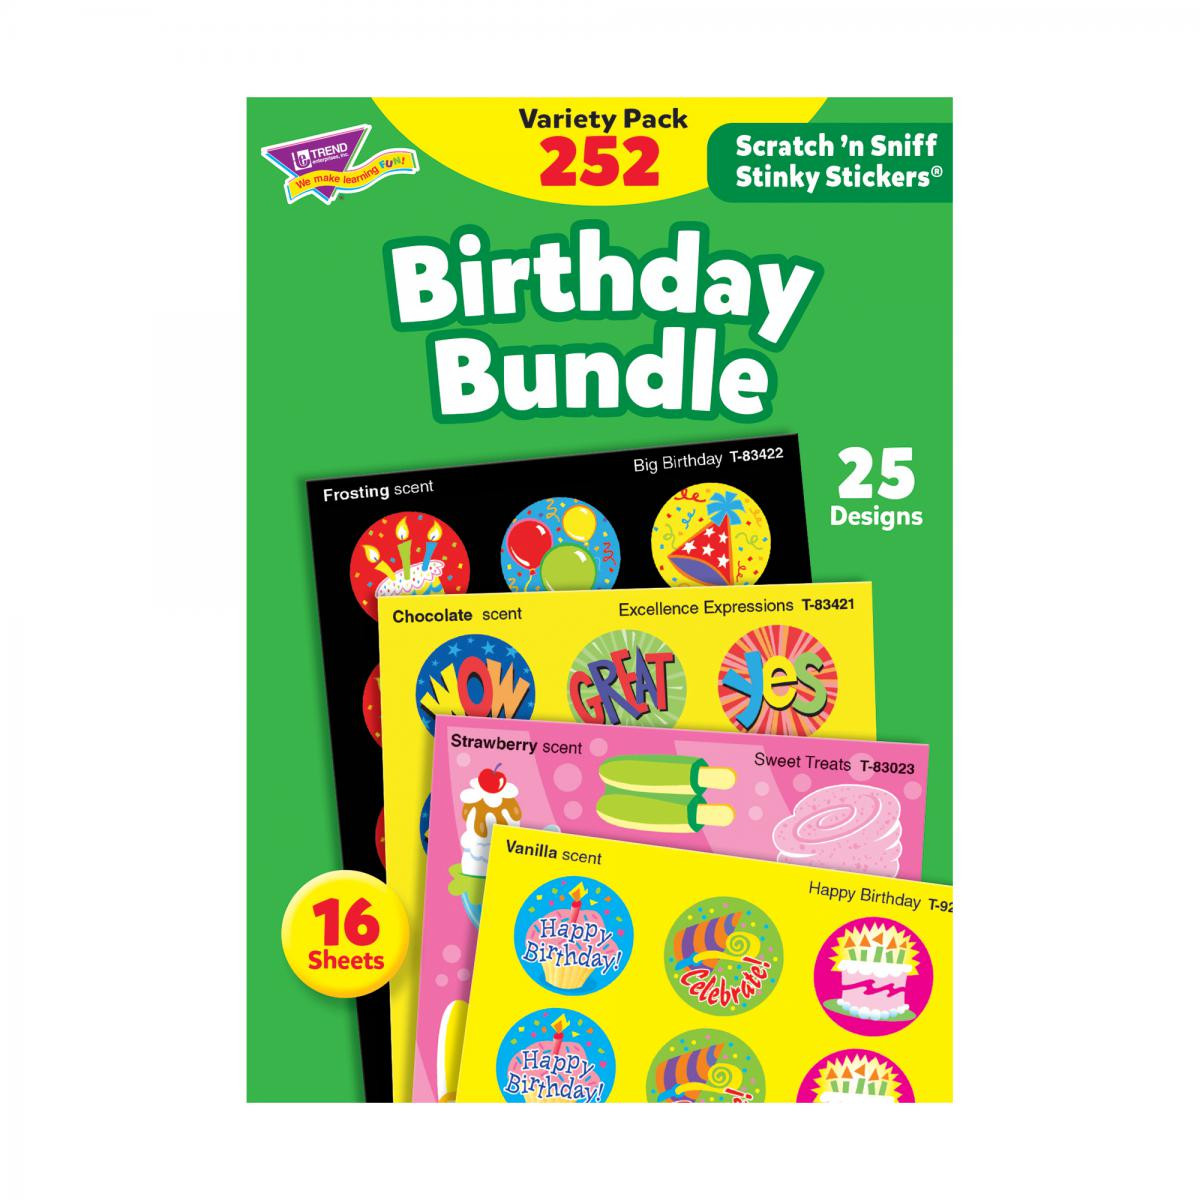 Birthday Bundle Scratch 'n Sniff Stinky Stickers®